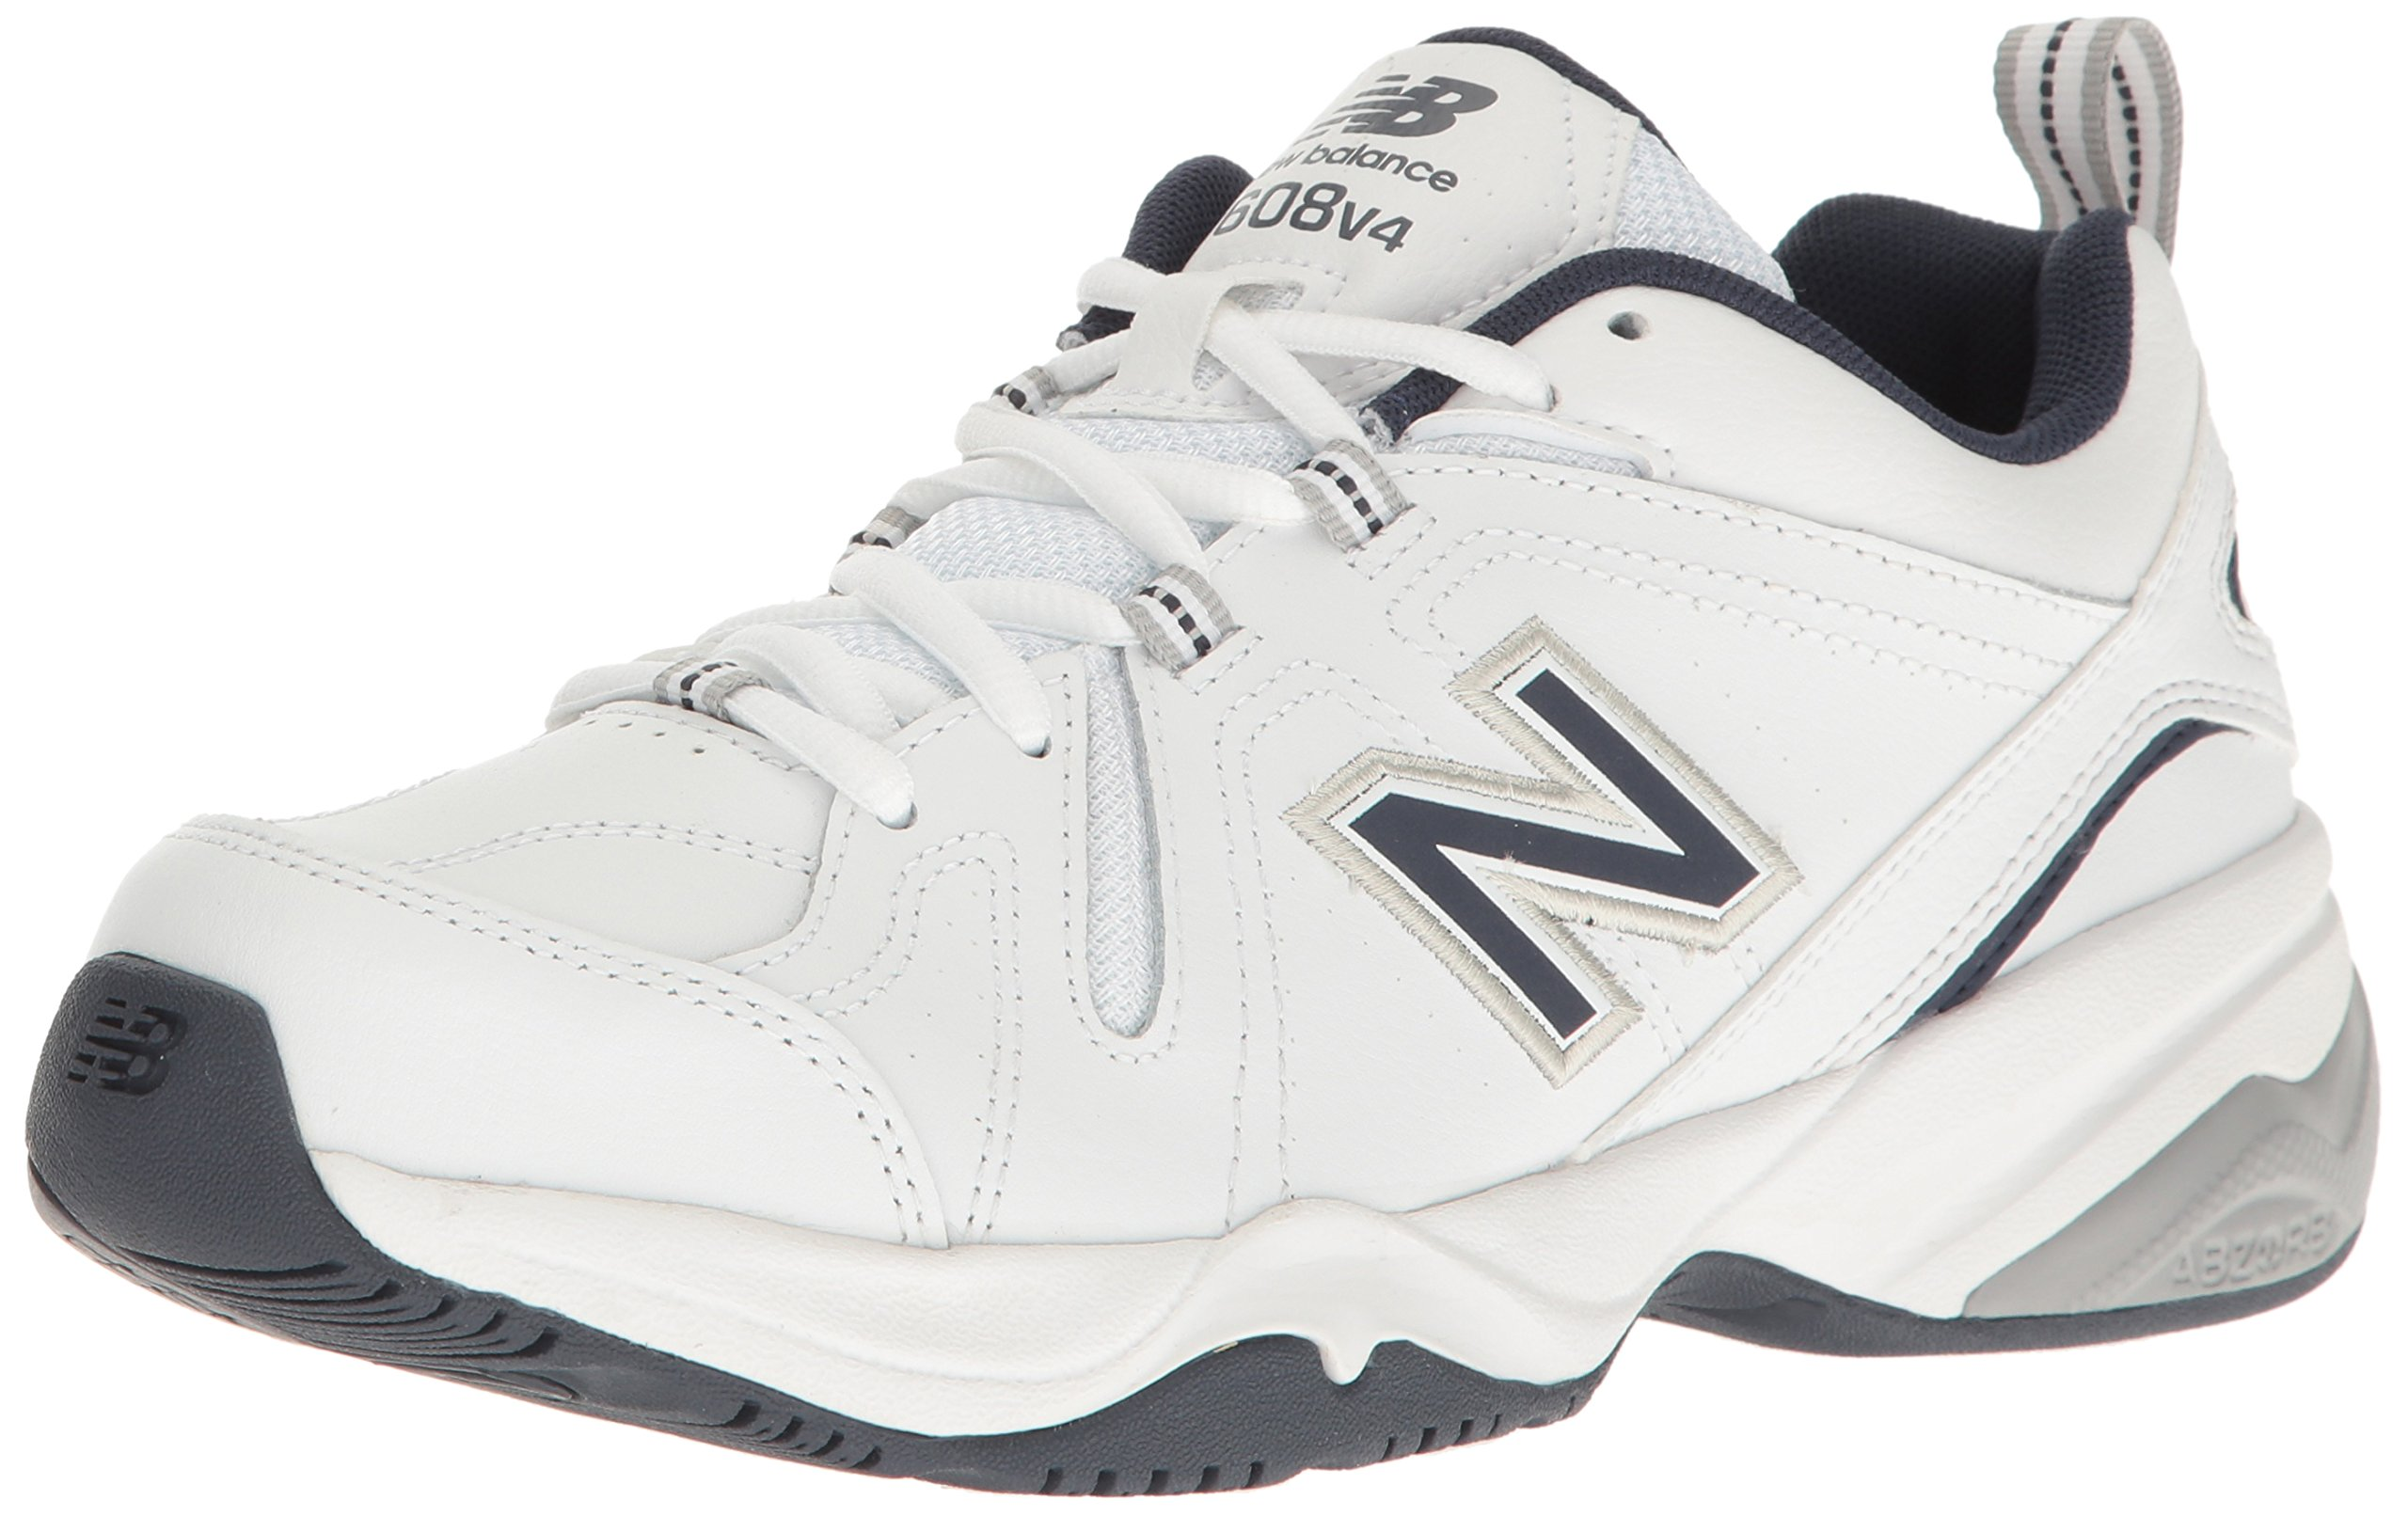 New Balance Men's MX608v4 Training Shoe, White/Navy, 10.5 4E US by New Balance